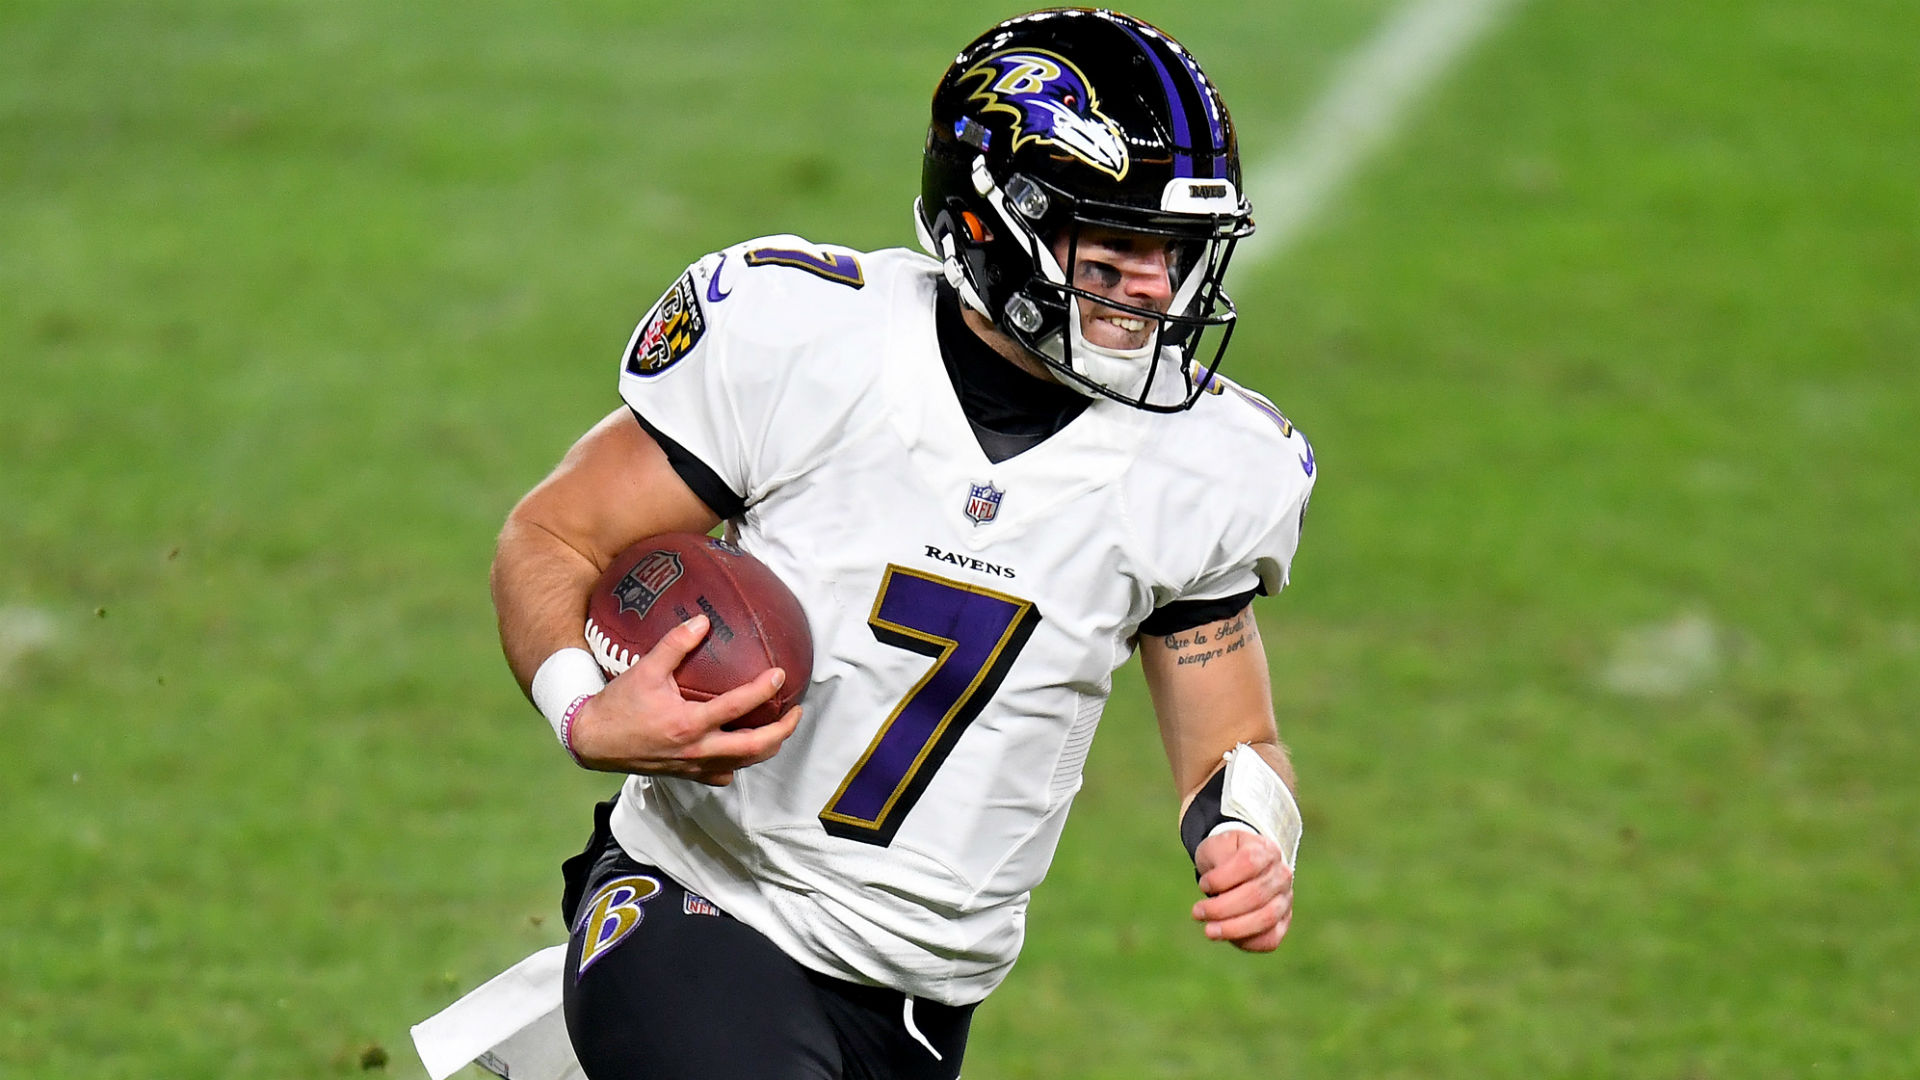 Ravens down to Trace McSorley at QB as injured Robert Griffin III ruled out